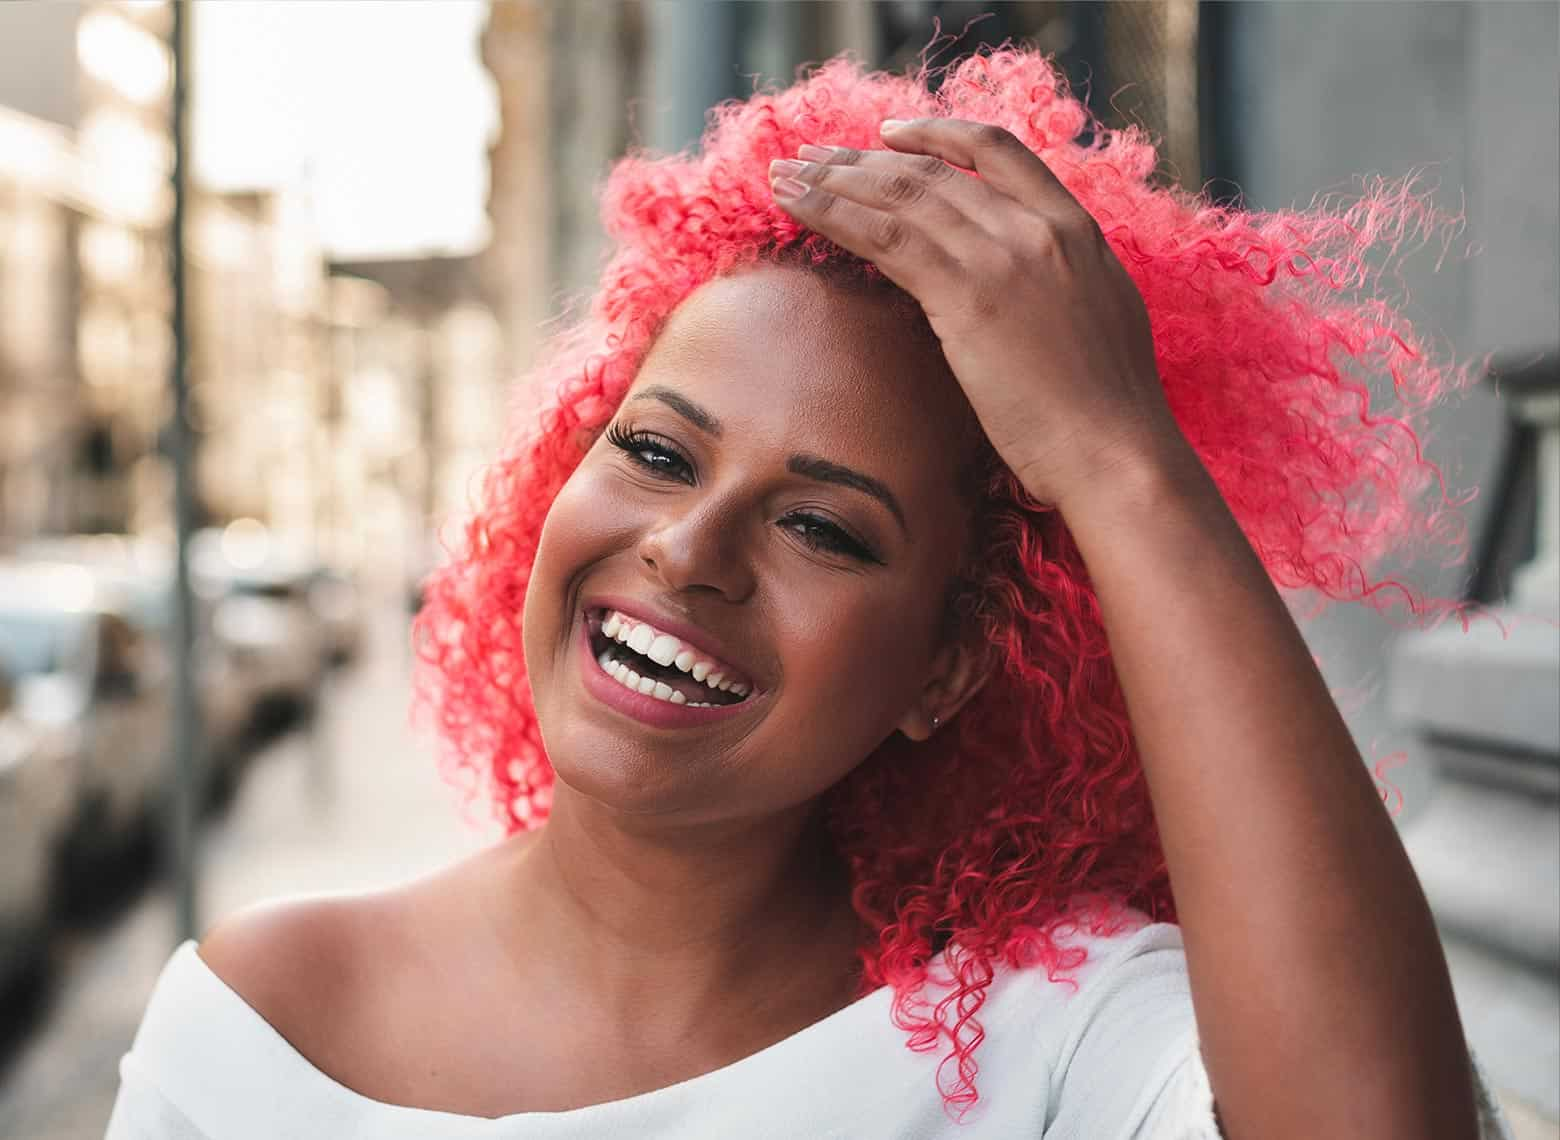 woman with bright red and curly hair